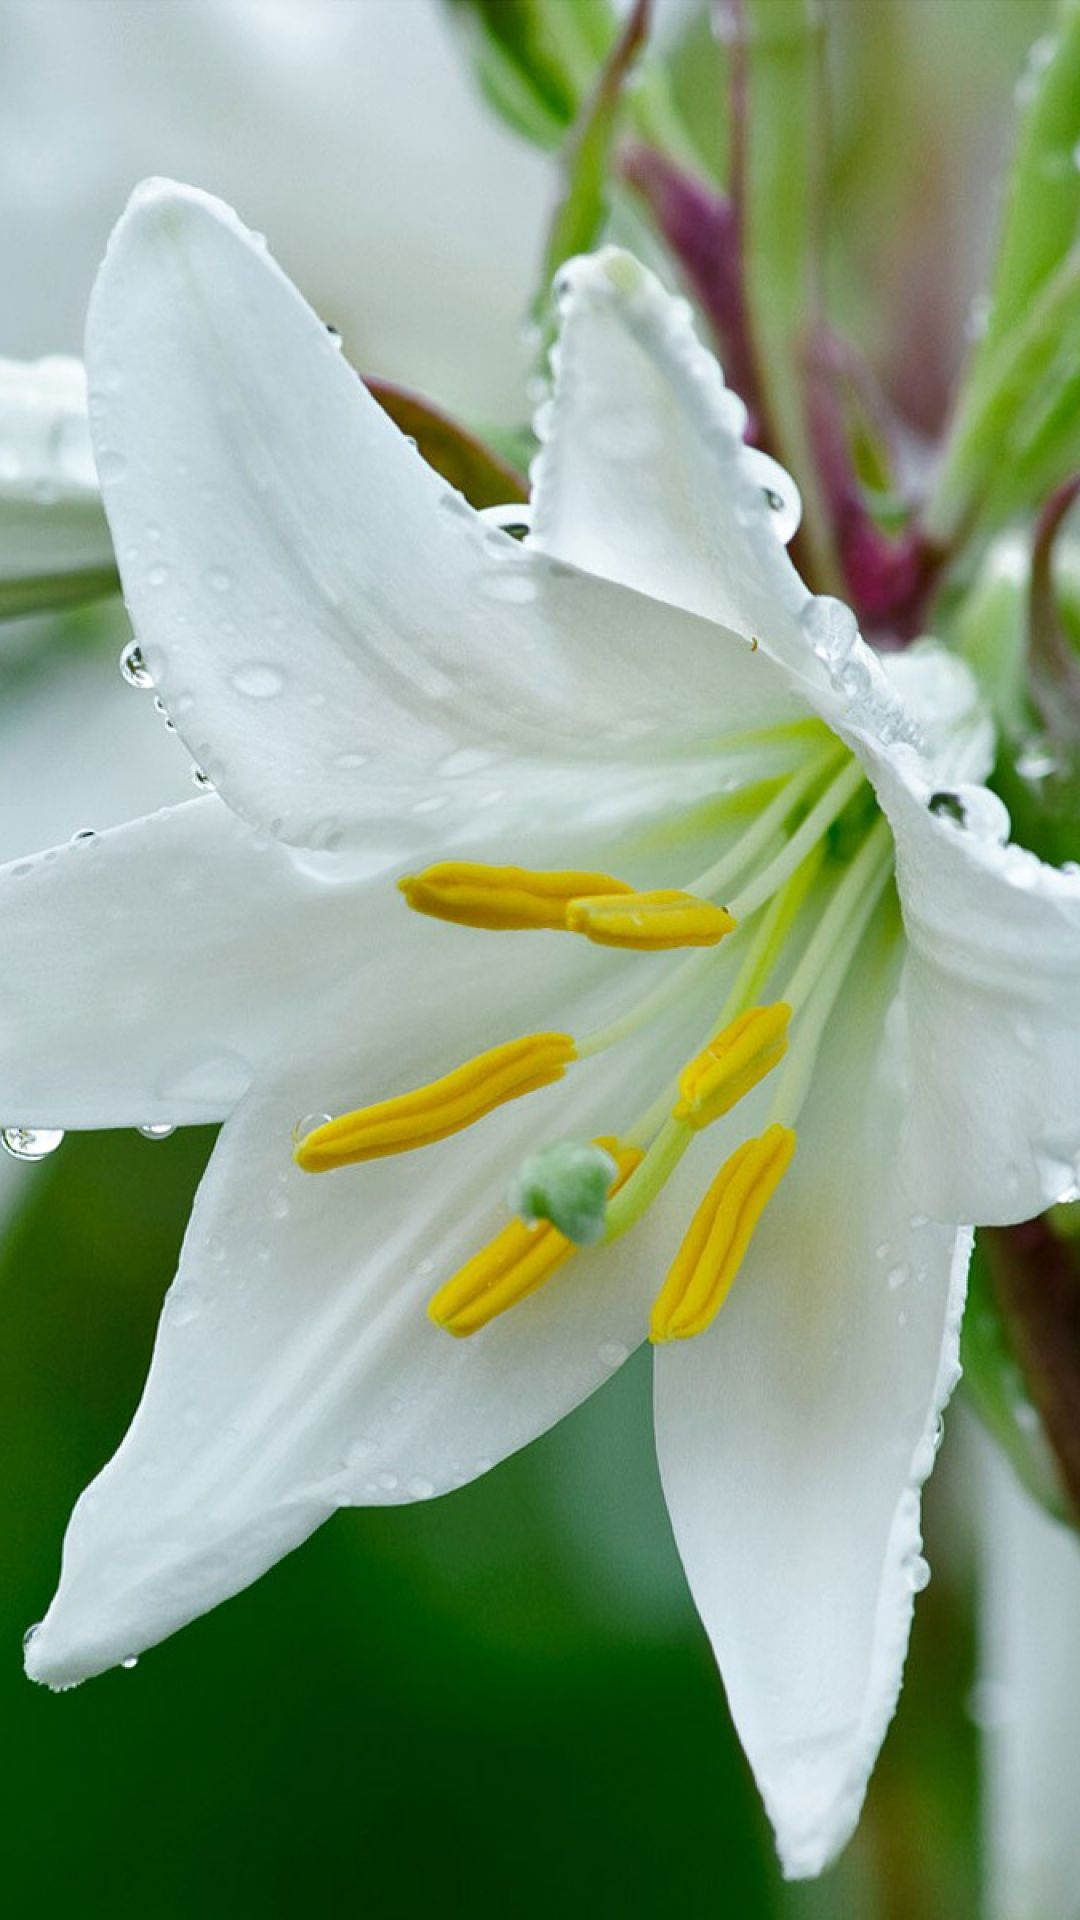 Pin By Phrena Wilkinson On Flowers White Lily Flower Flowers